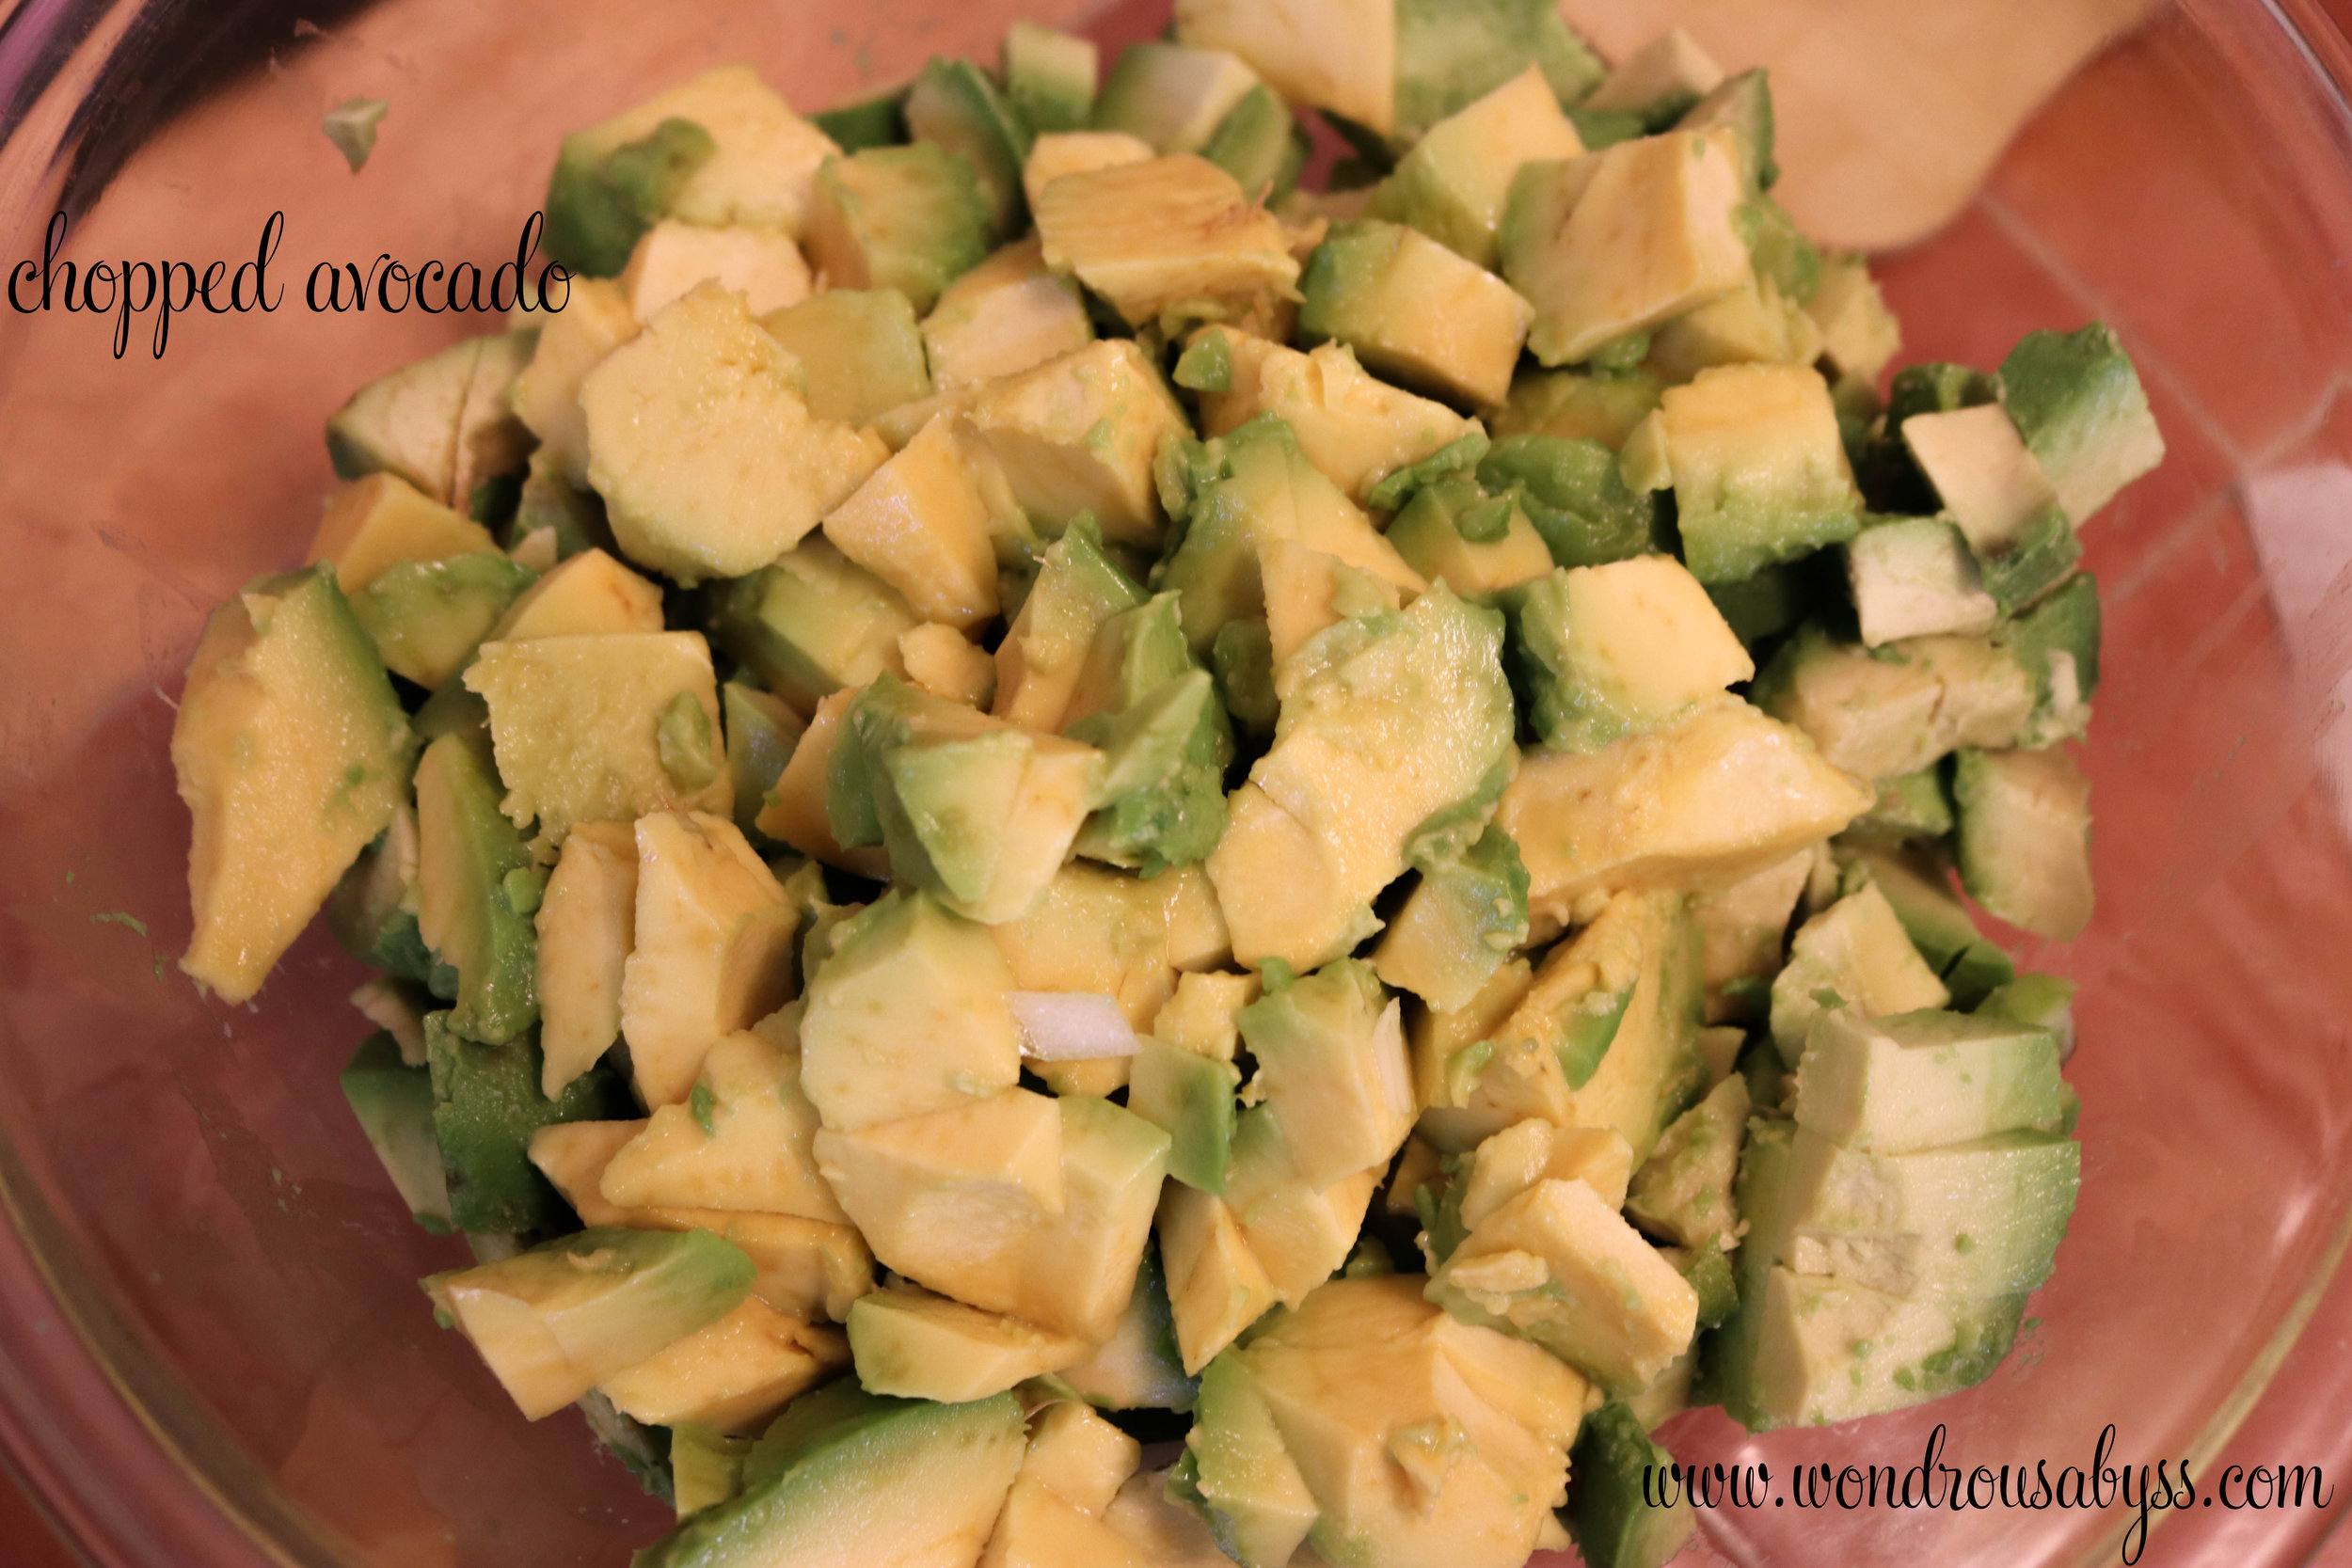 chopped avocado wondrous abyss (1 of 1).jpg